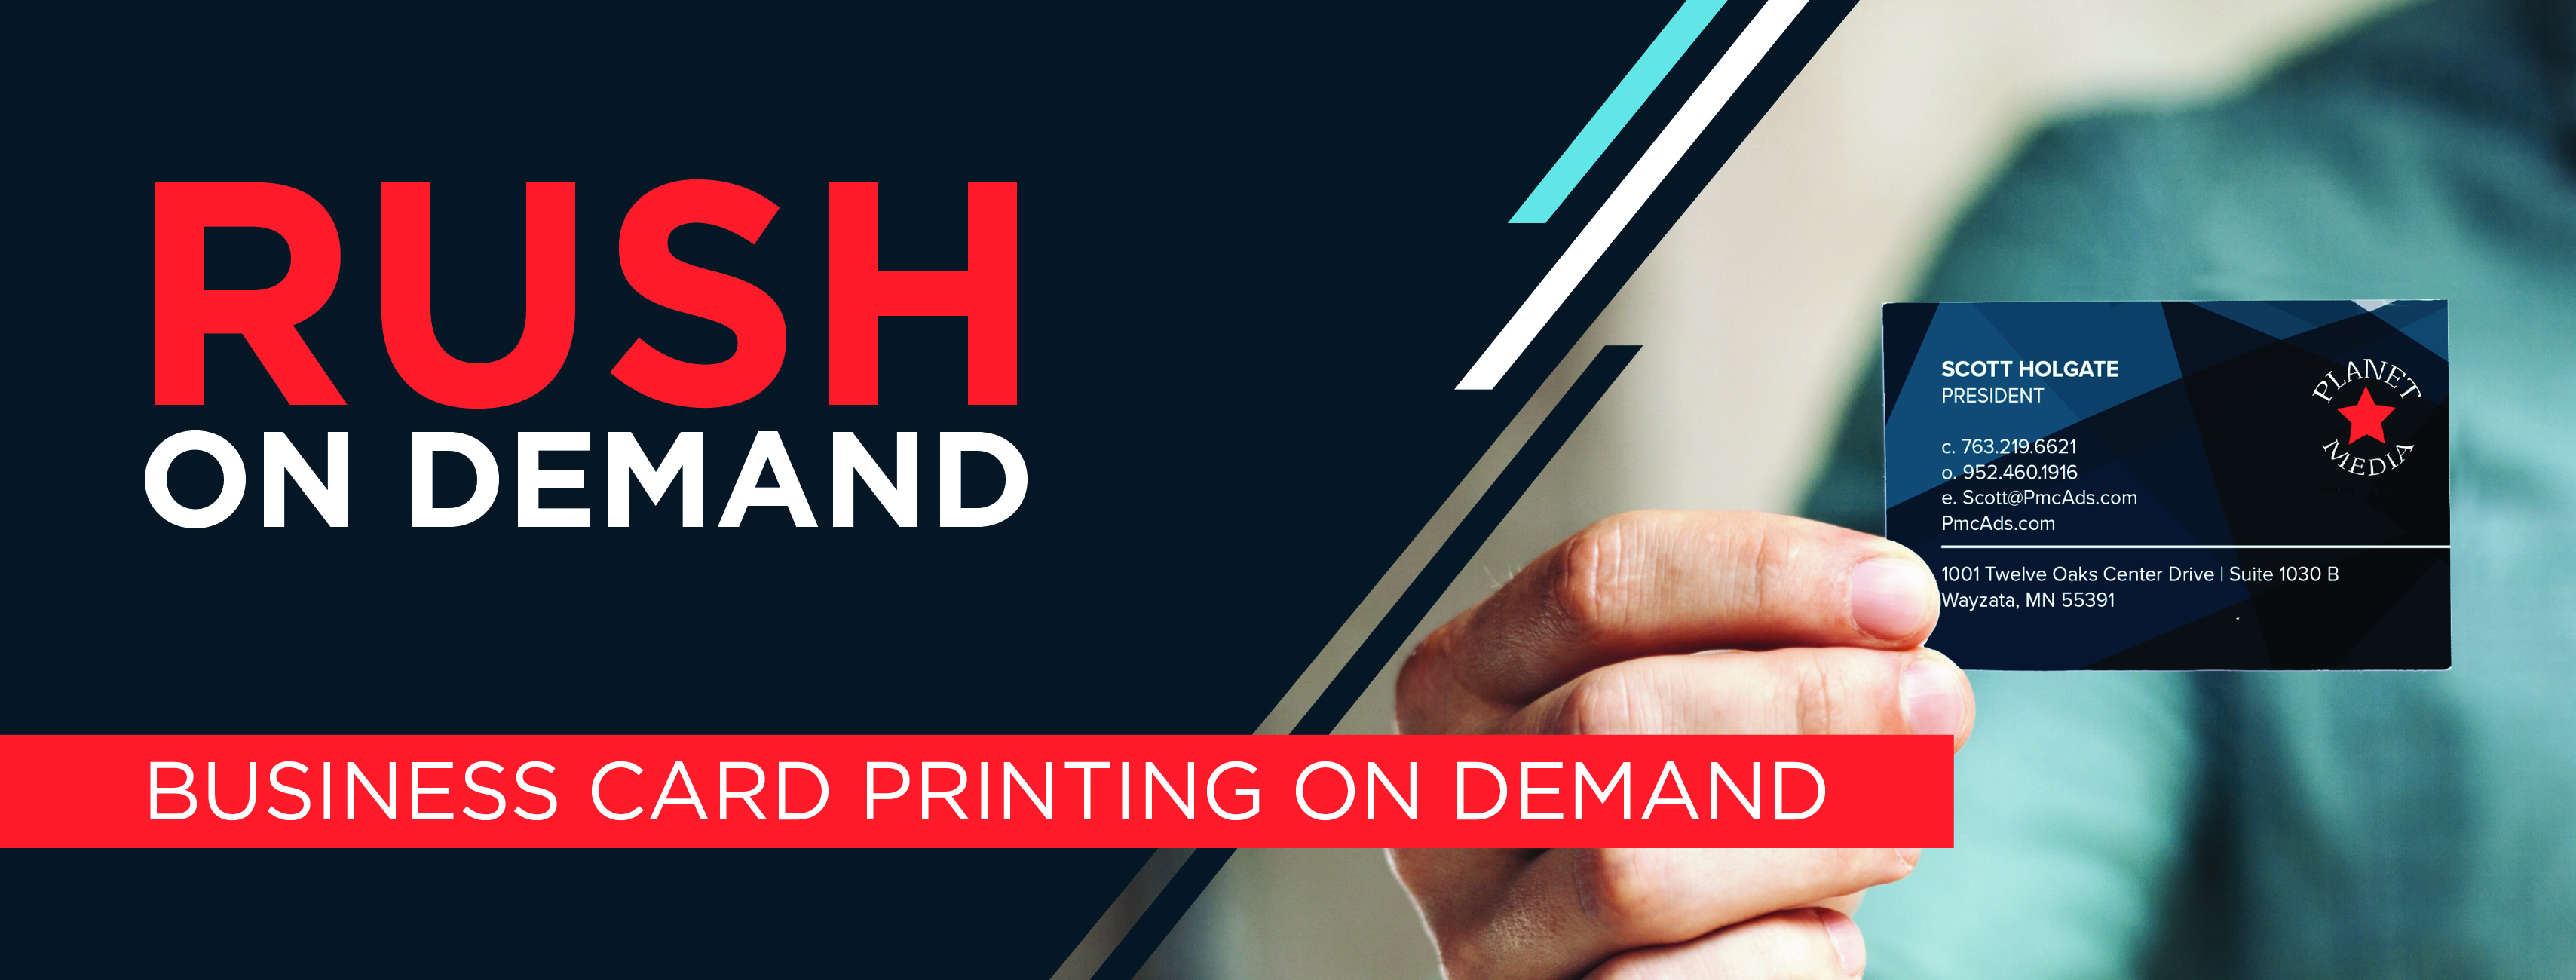 Planet Media Business Card Printing on Demand!